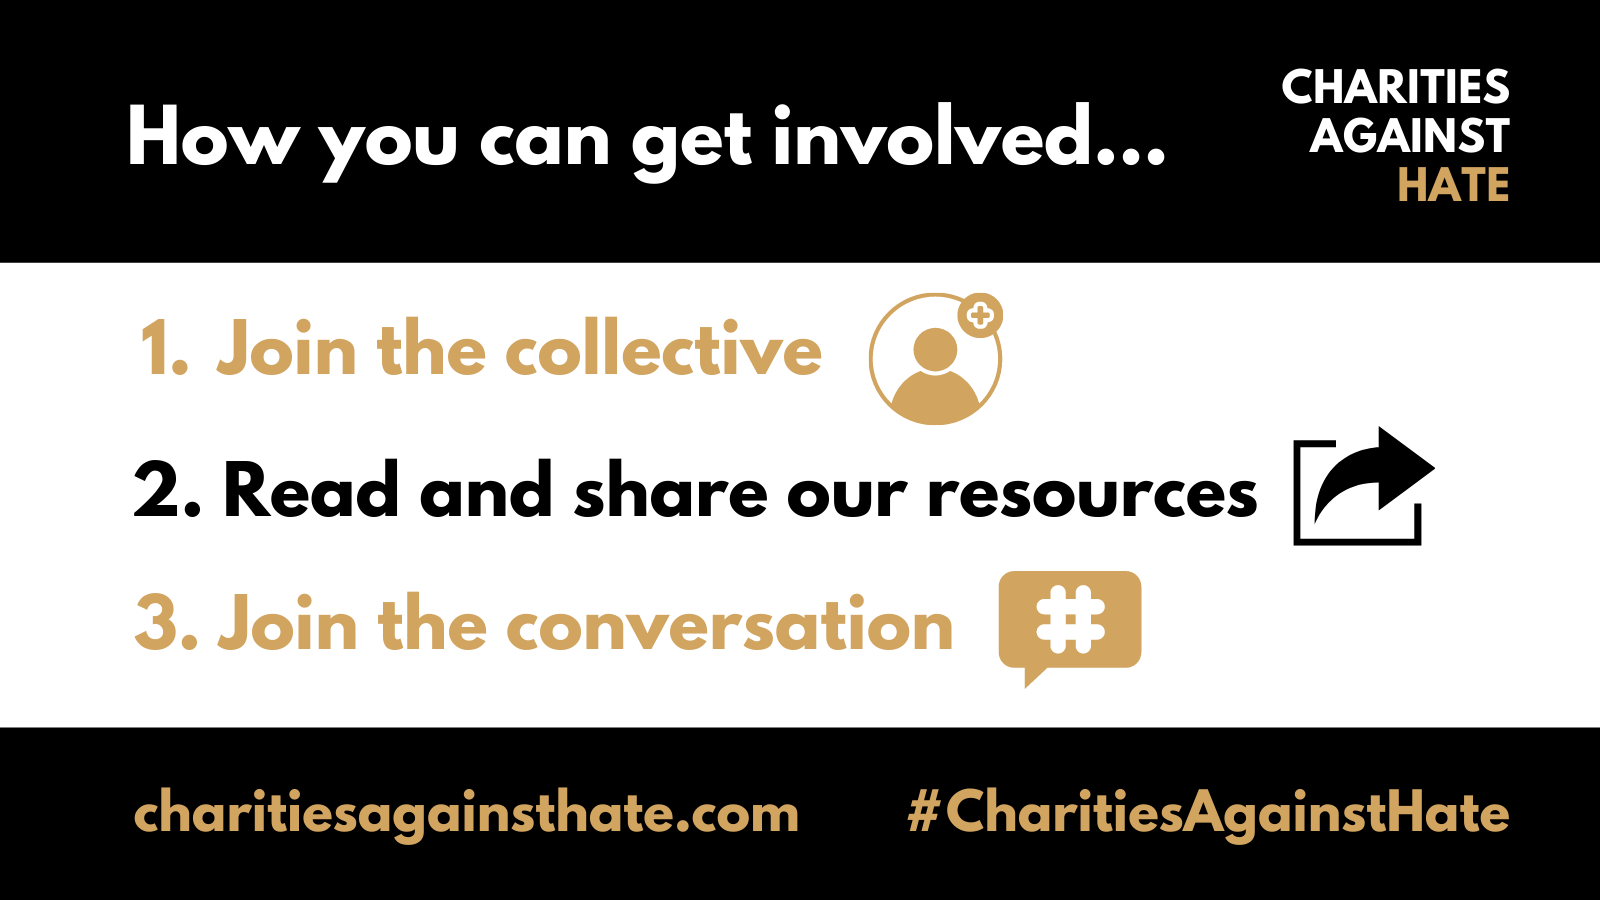 Charities Against Hate - how you can get involved (1).png